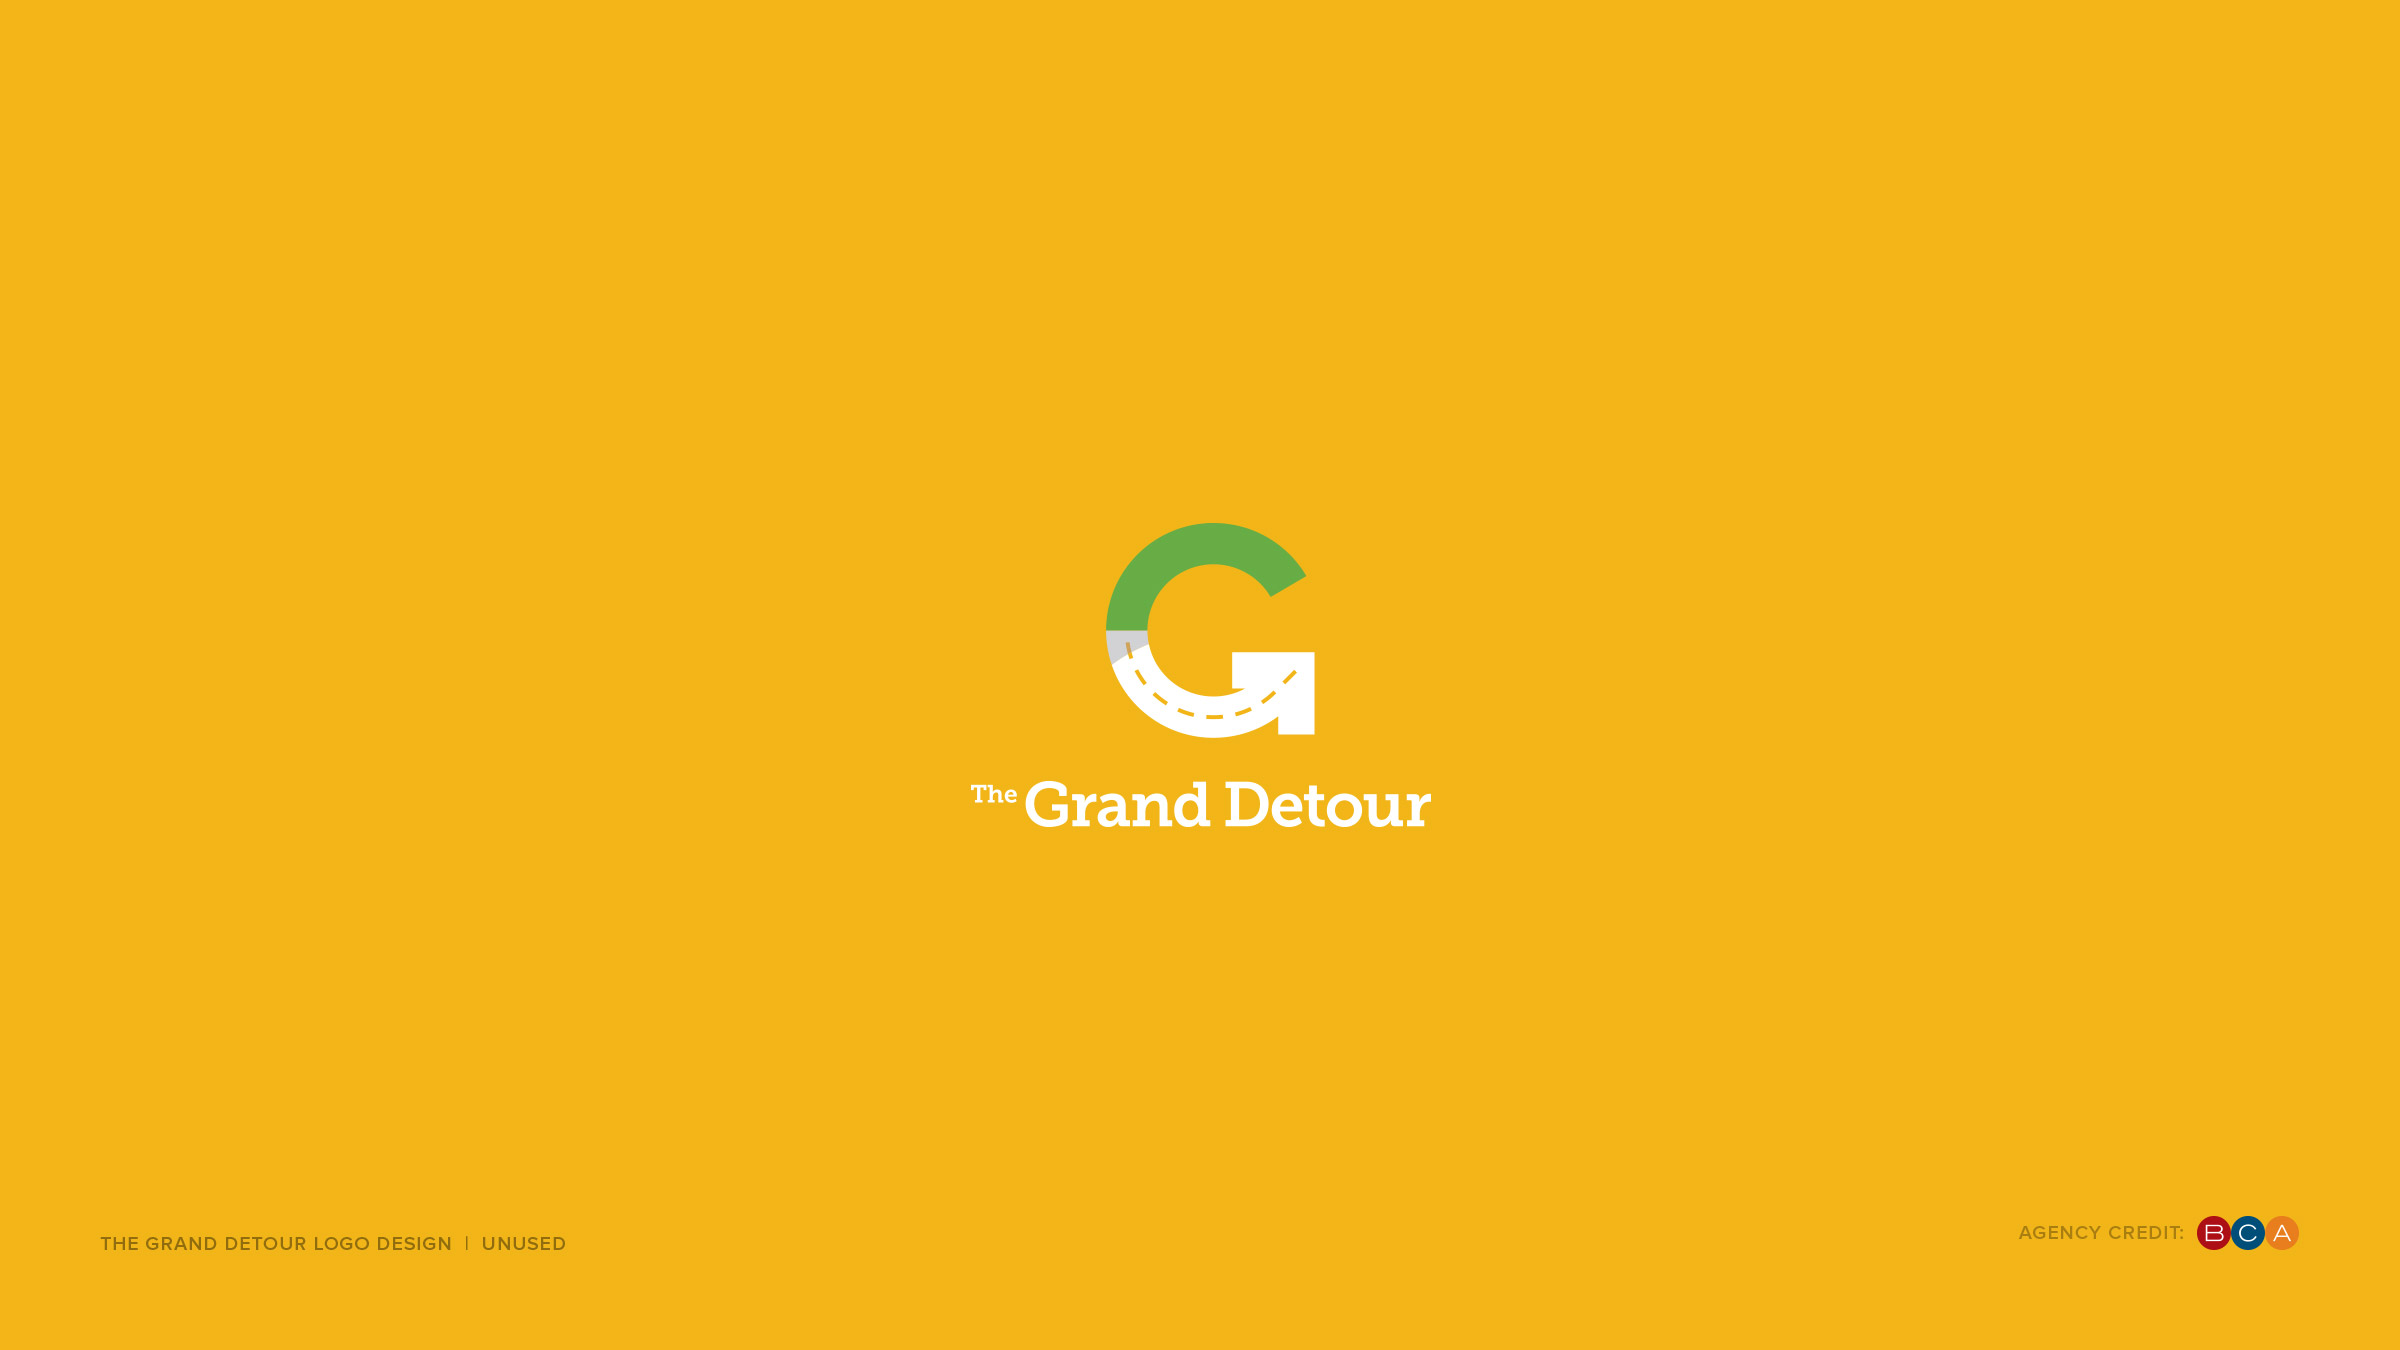 Logo Design Portfolio v.4 7 Grand Detour unused